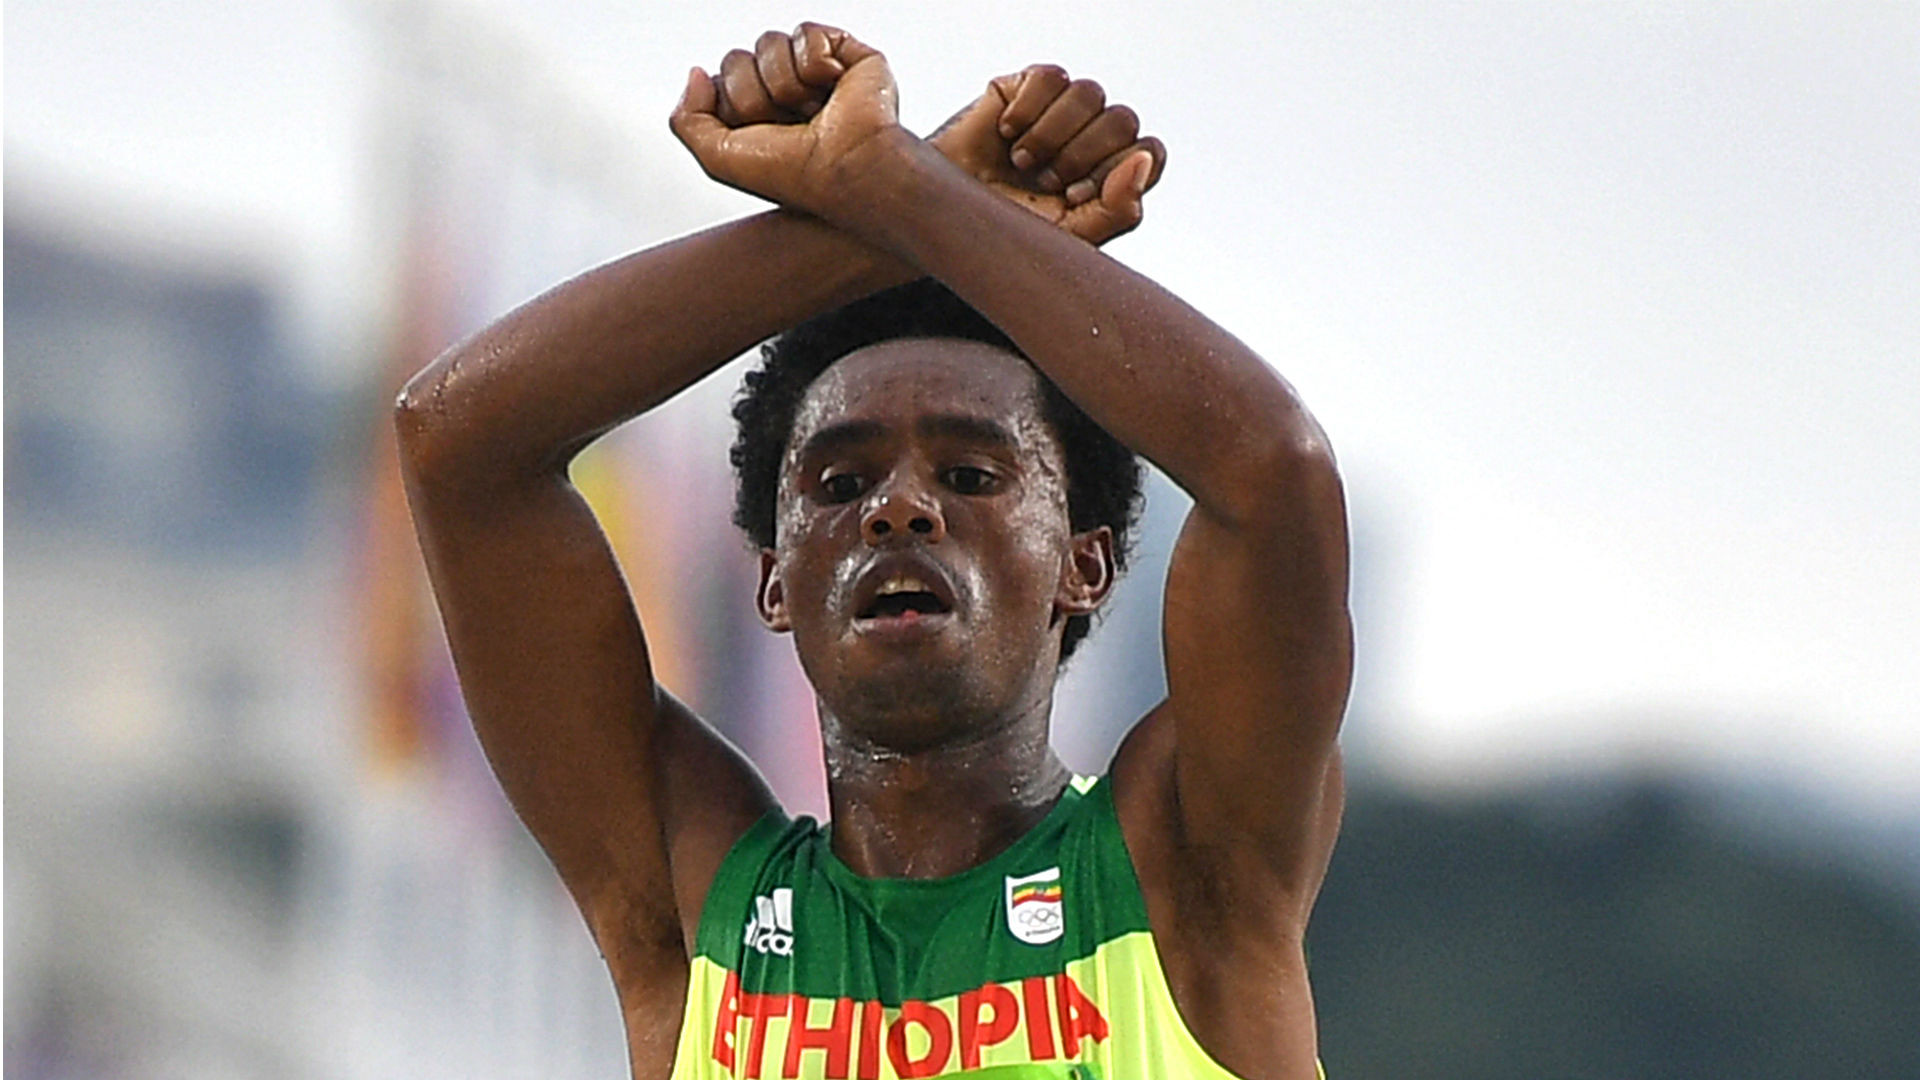 Olympic silver medallist Feyisa Lilesa had been in exile in the US since making this anti-government gesture